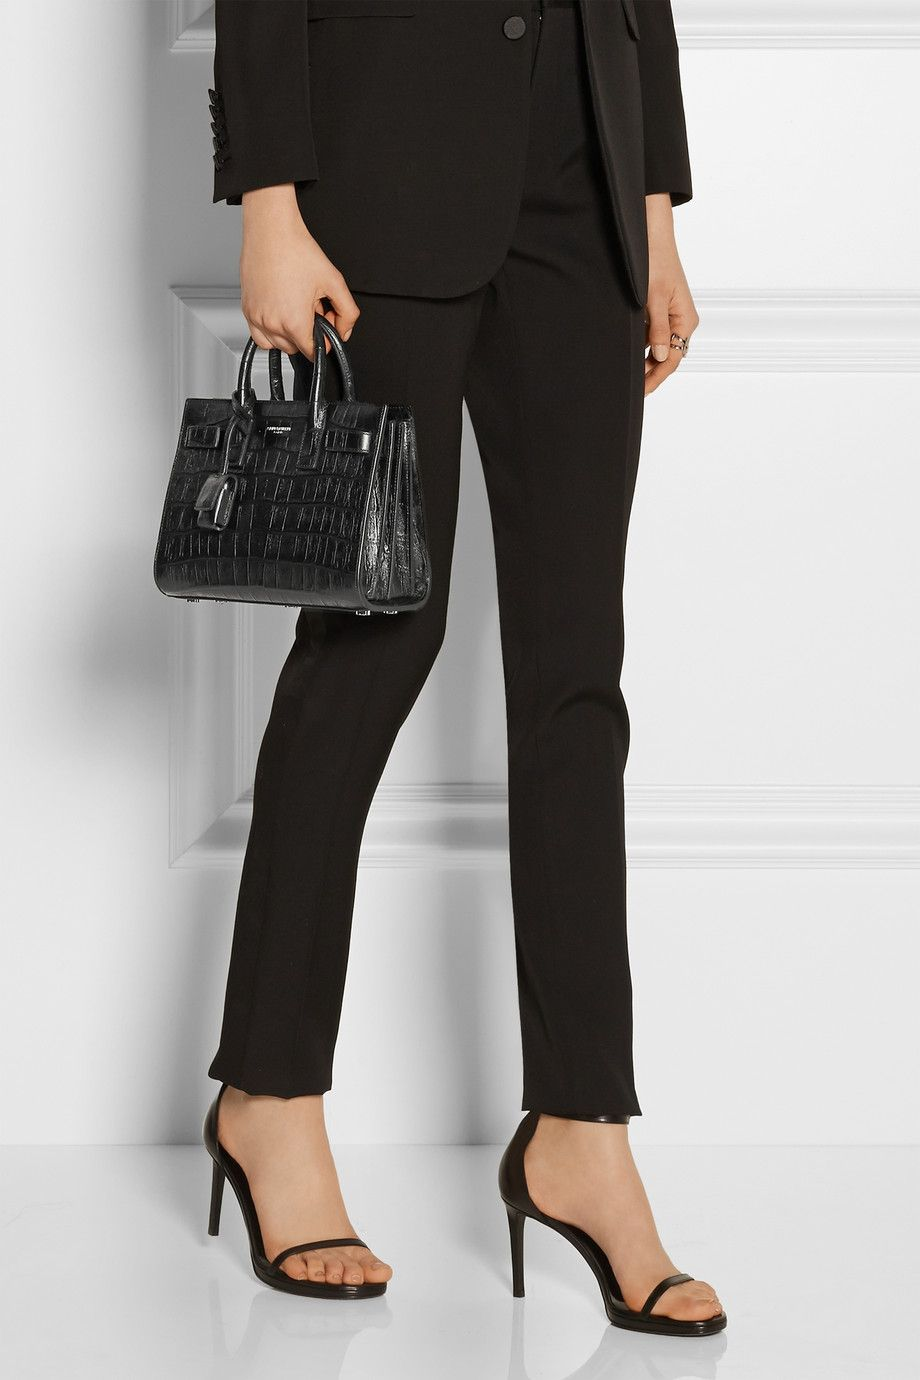 0d5210f94b94 Saint Laurent